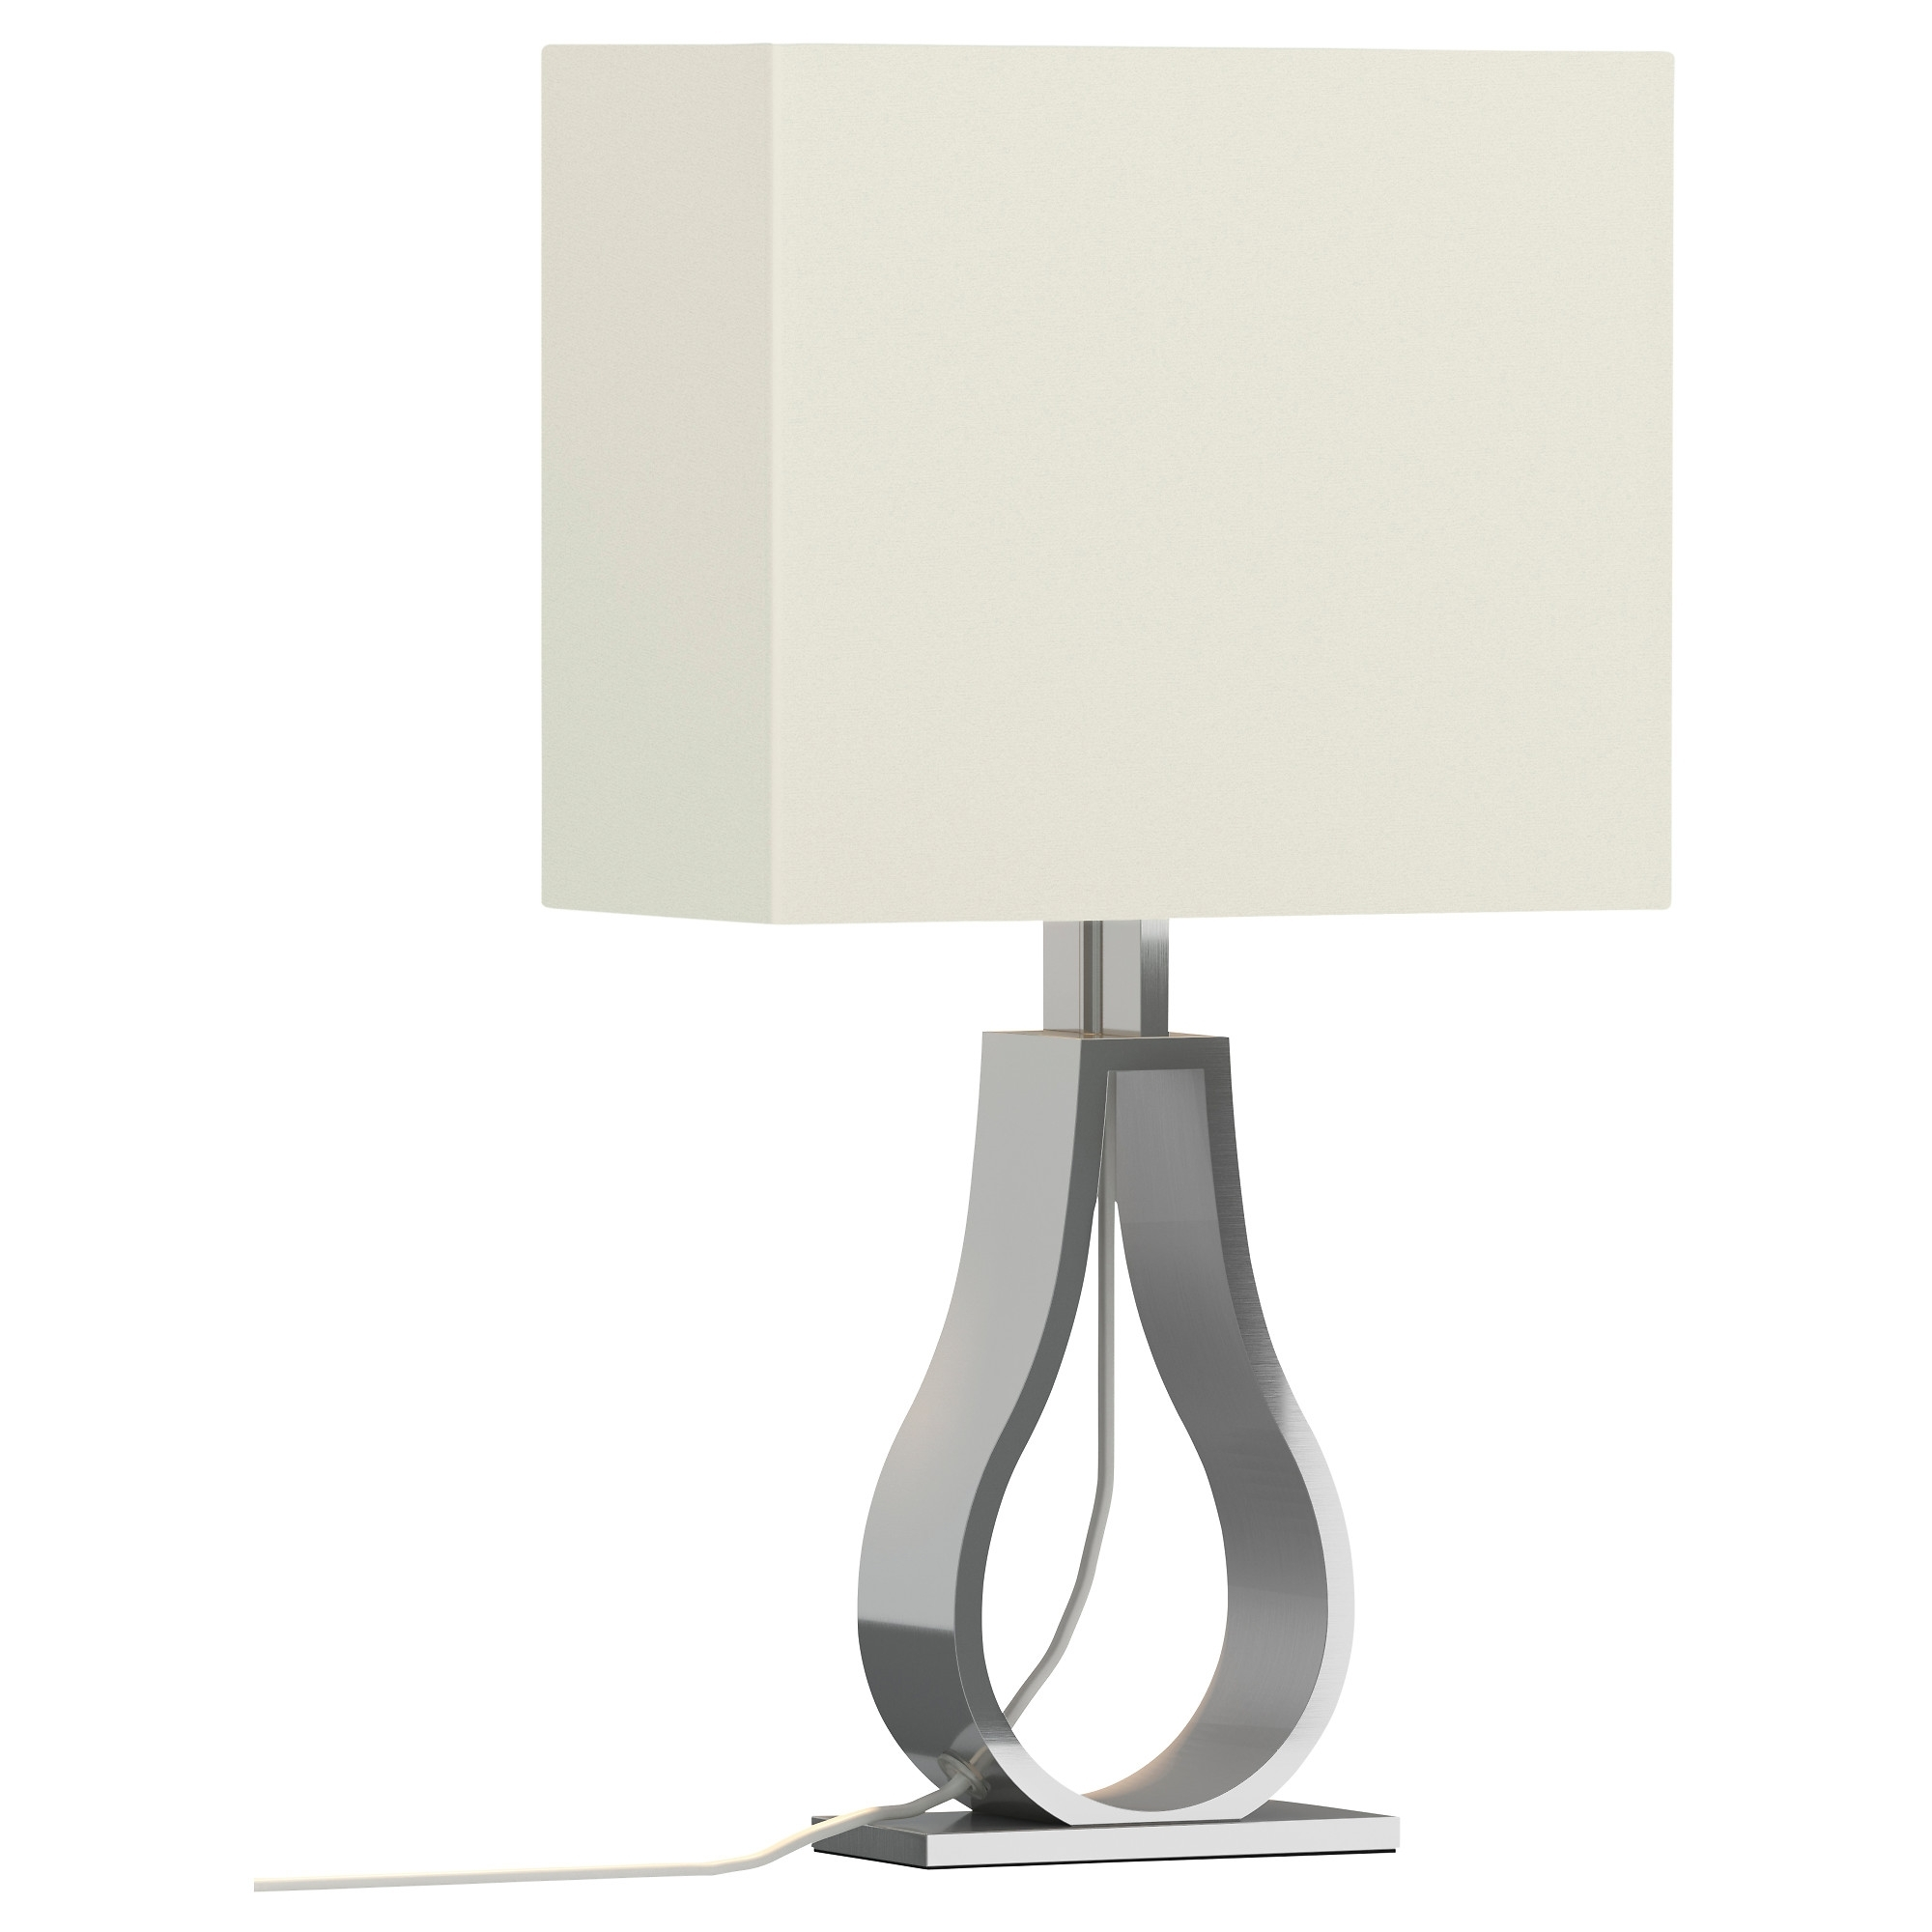 Trendy Table Lamps Ikea Decoration (View 13 of 20)